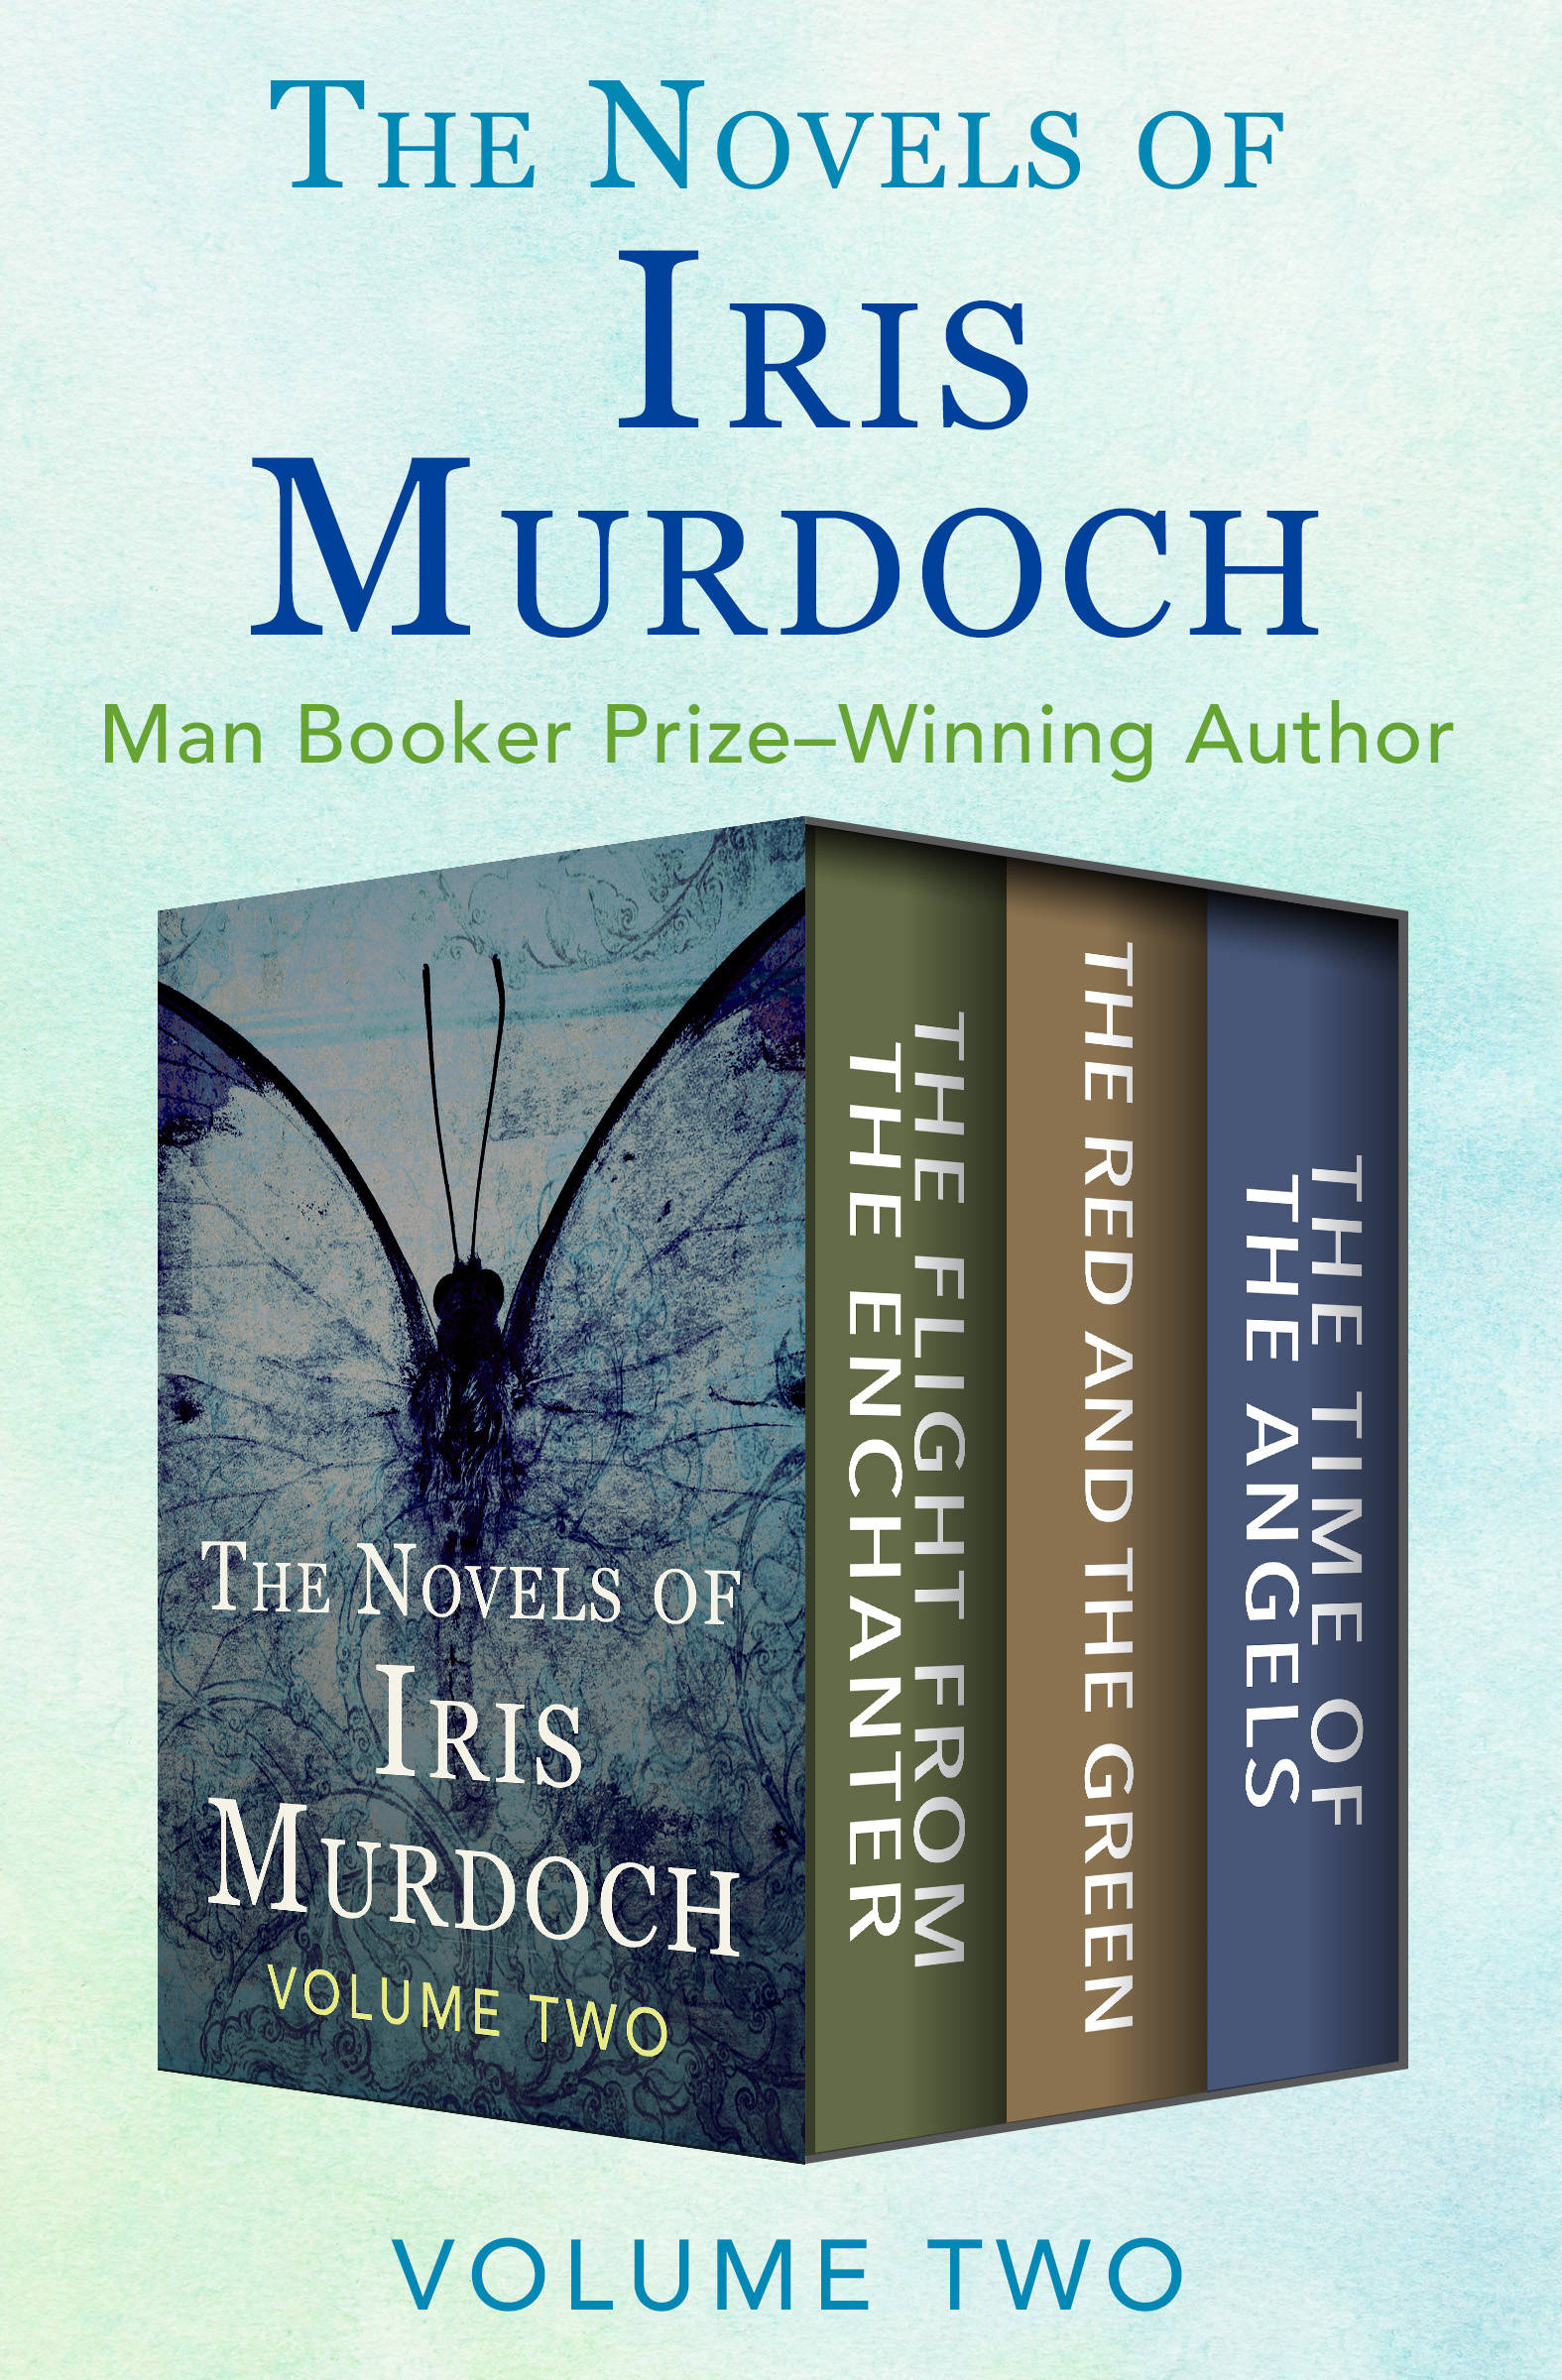 Novels of Iris Murdoch Volume Two